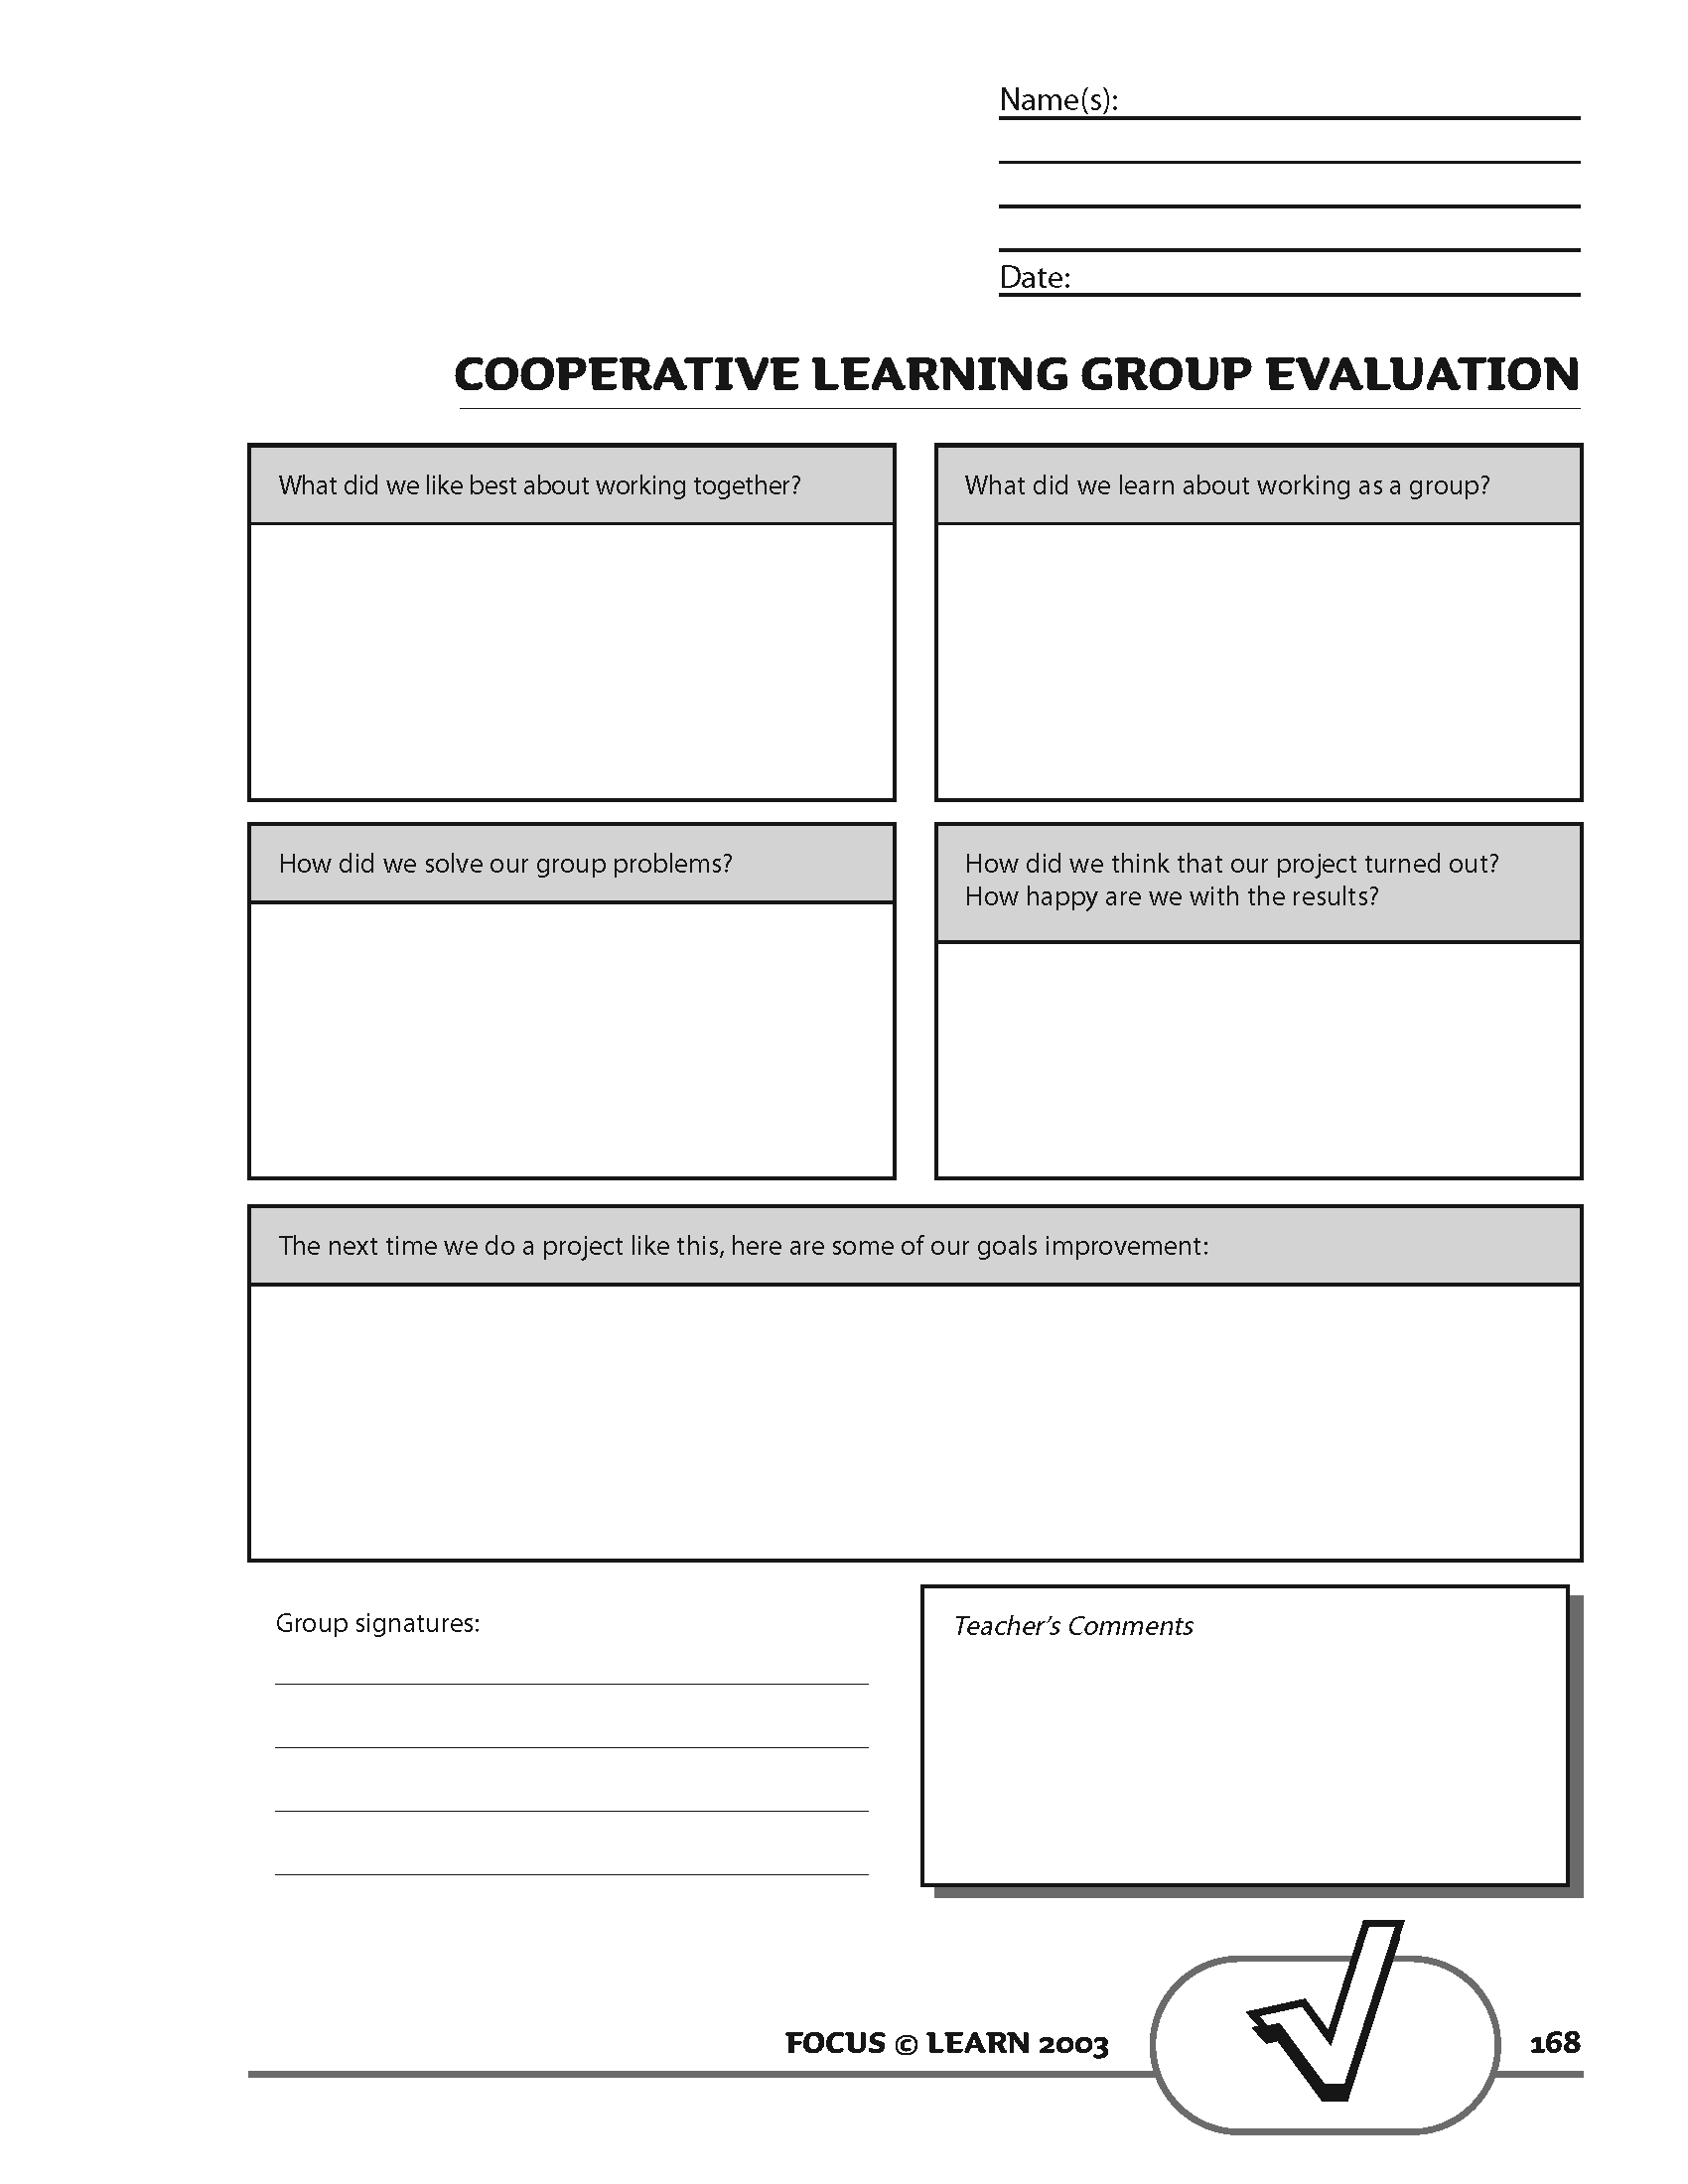 Cooperative Learning Group Evaluation Tool